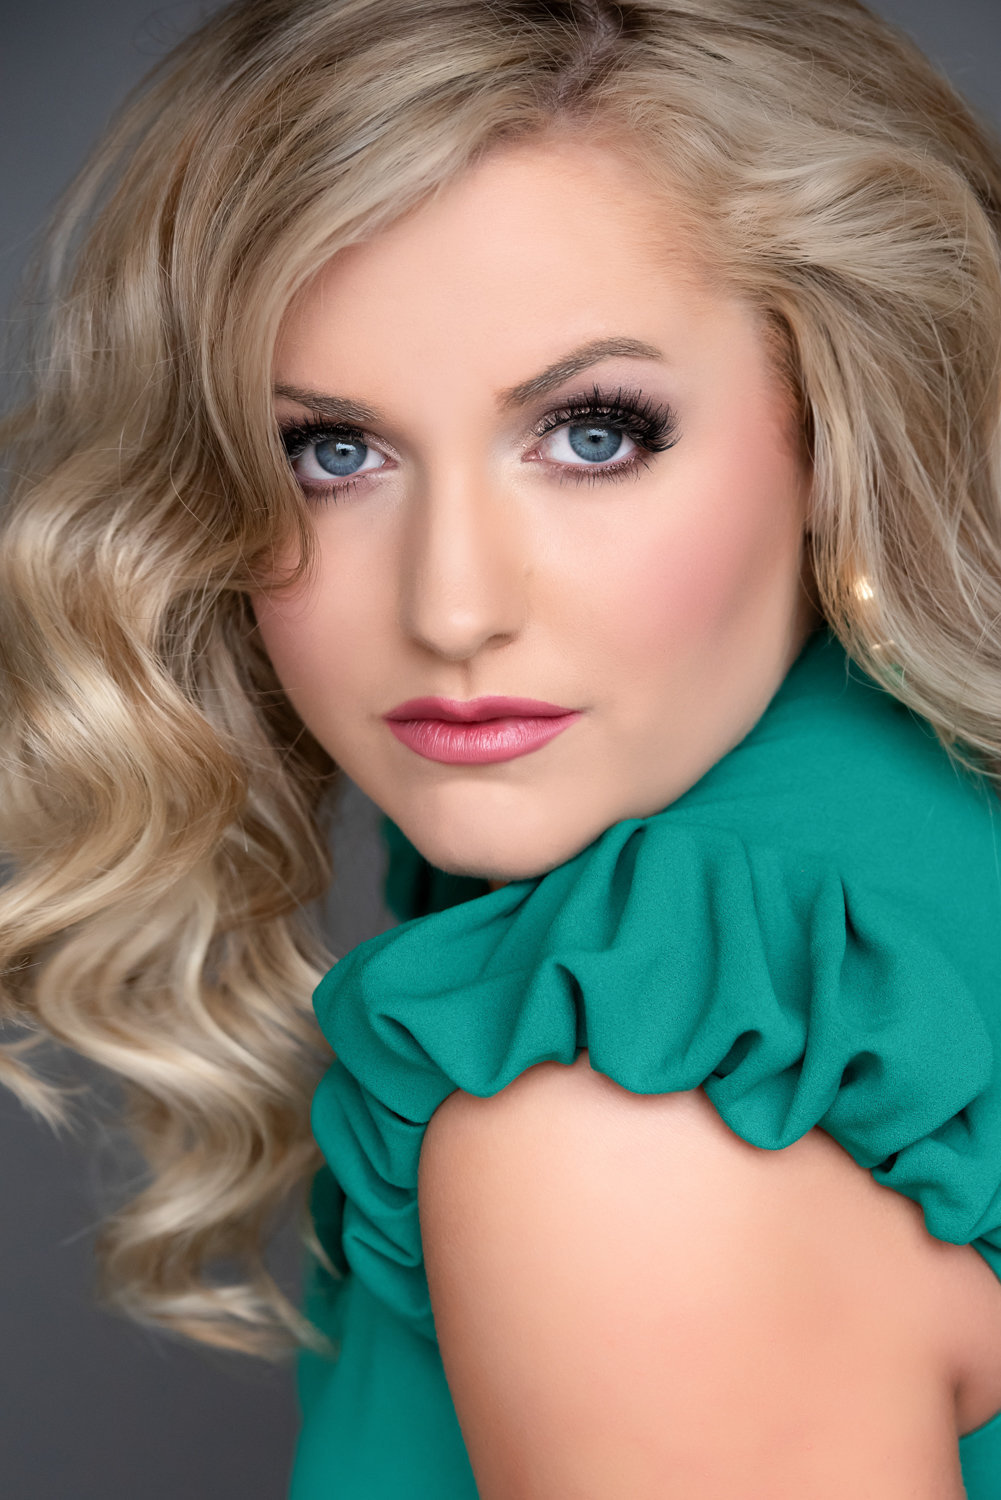 leigh joy photography alabama pageant actor dance headshot personal branding photographer-34